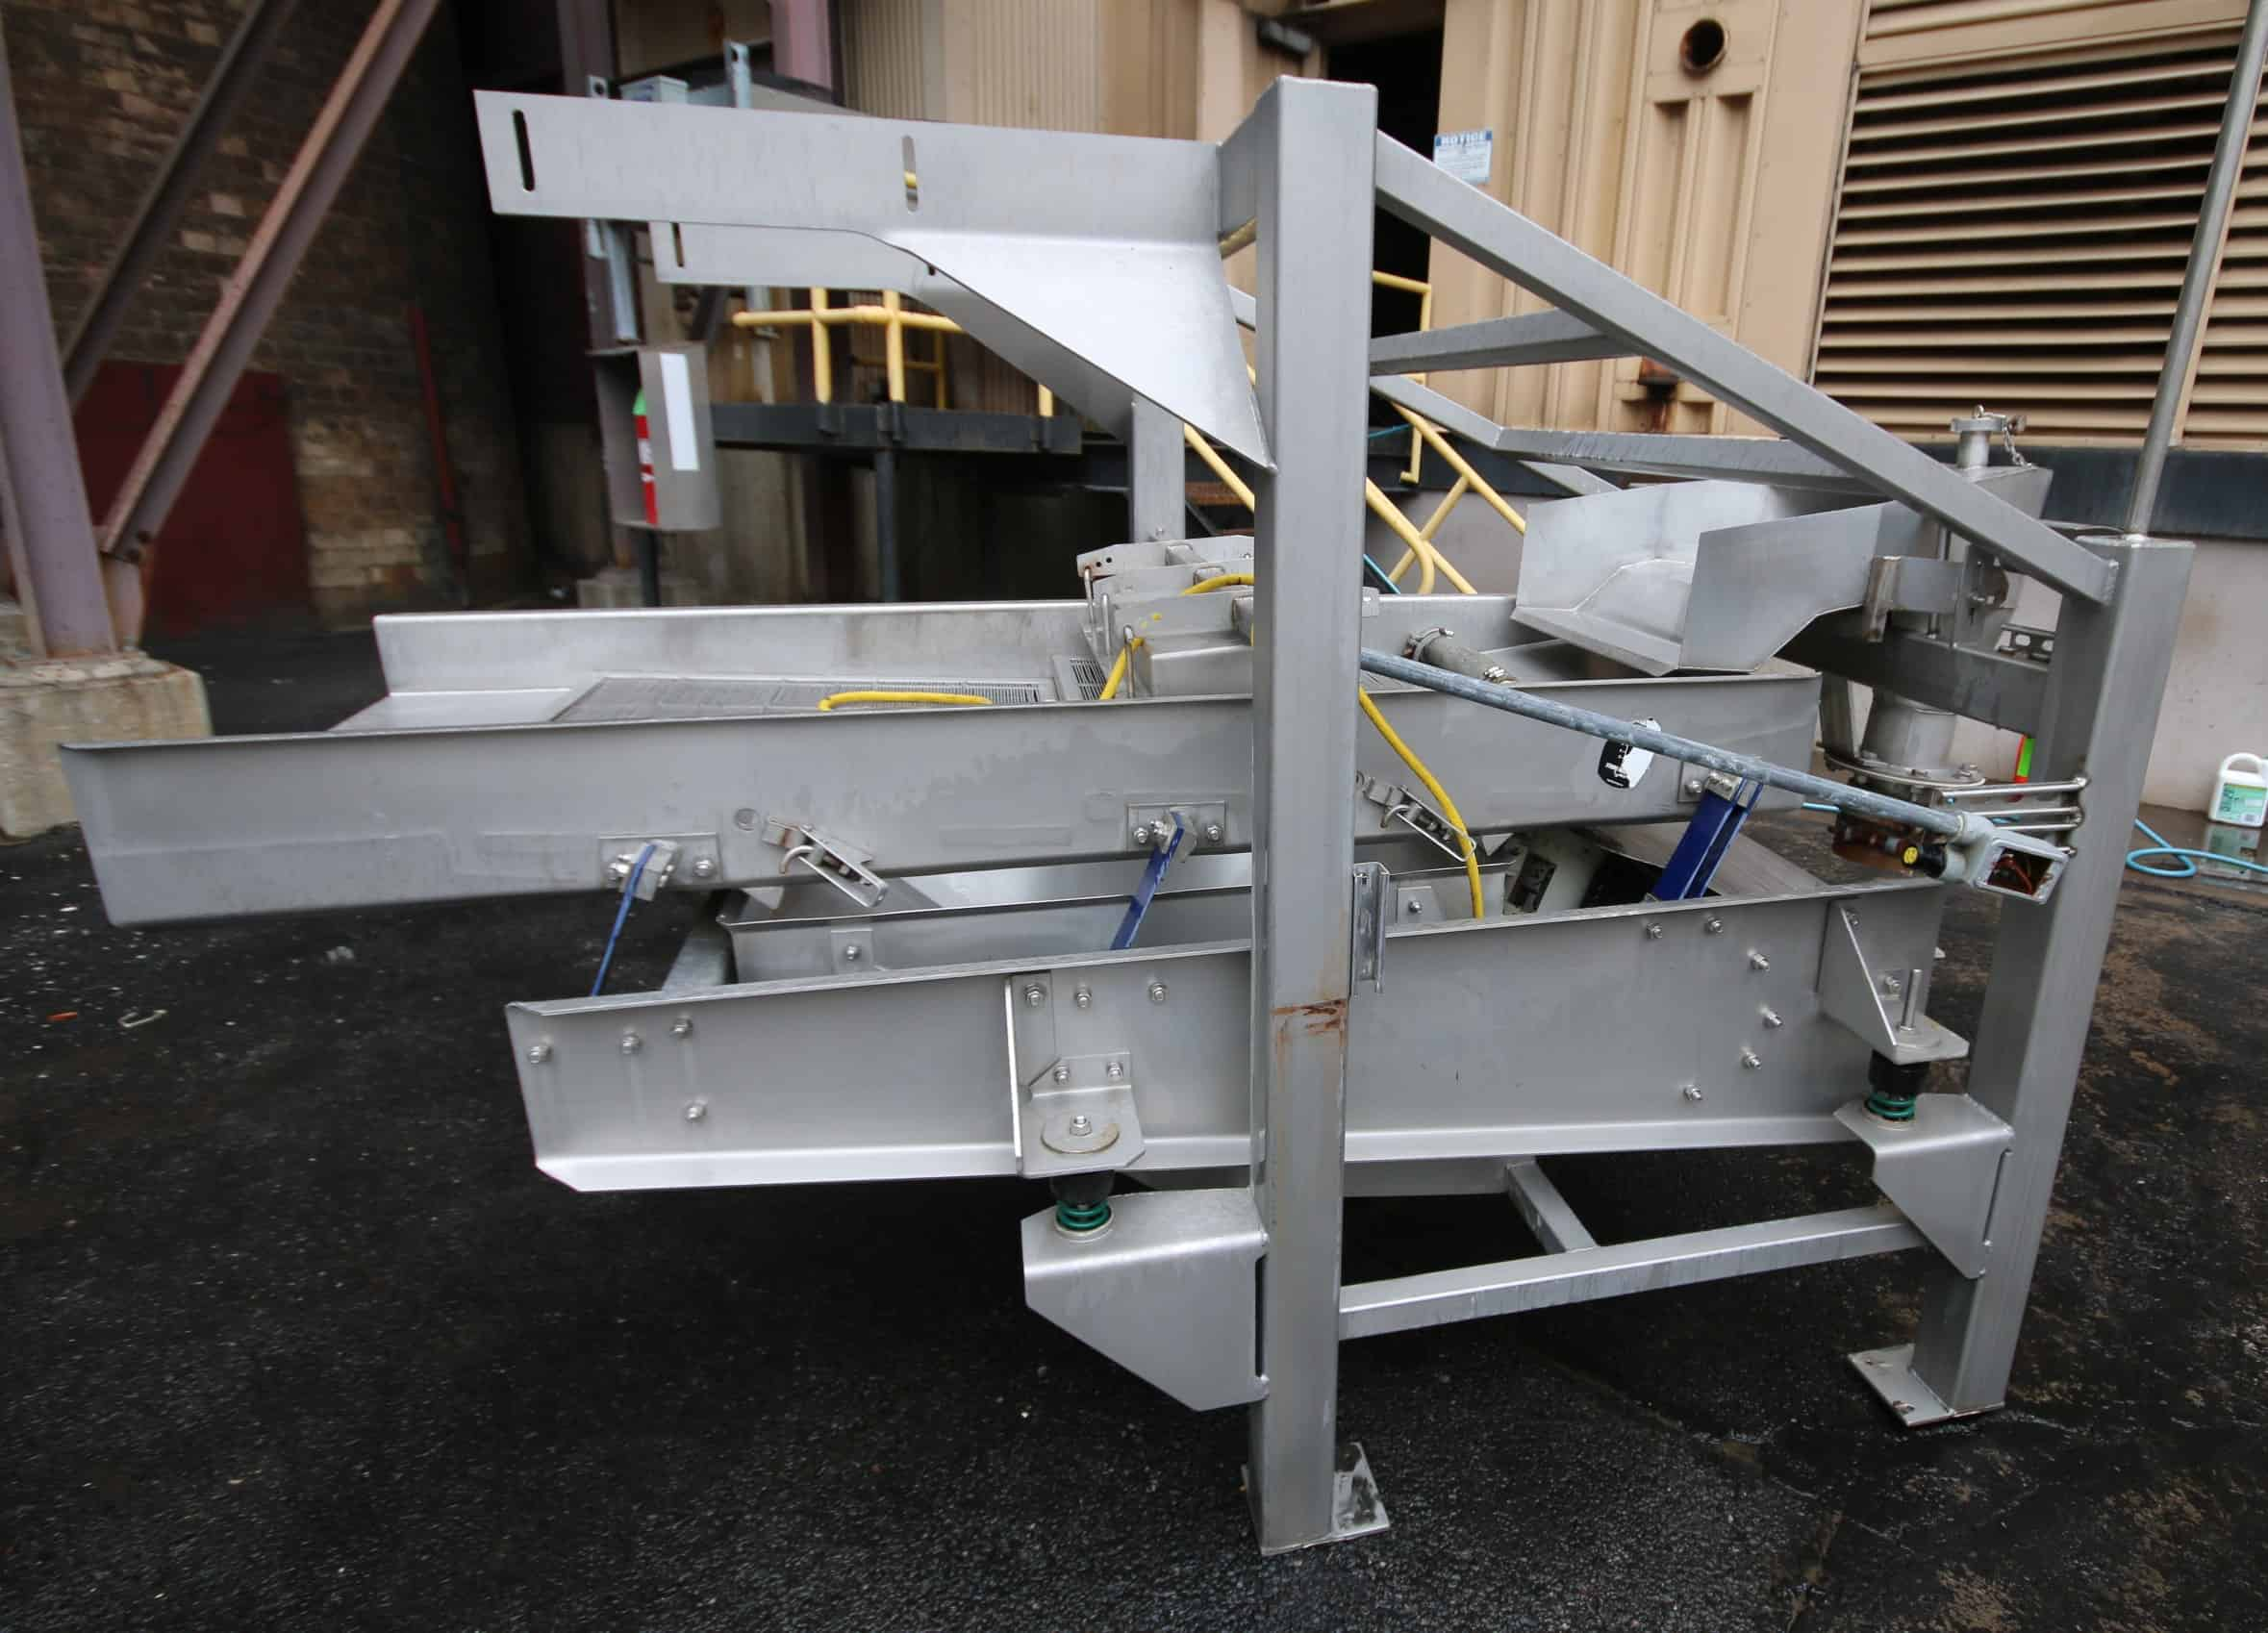 "(2) Key 7 ft L x 30"" W All S/S ISO - FLO Vibratory Dewatering / Fines Removal / Shaker Conveyor, with 2 - Levels with (2) S/S Screens, Mounted on 24"" H S/S Frame, Includes Bottom Mounted S/S Drain Hopper Add to Discription - Top Mounted Magnetic"